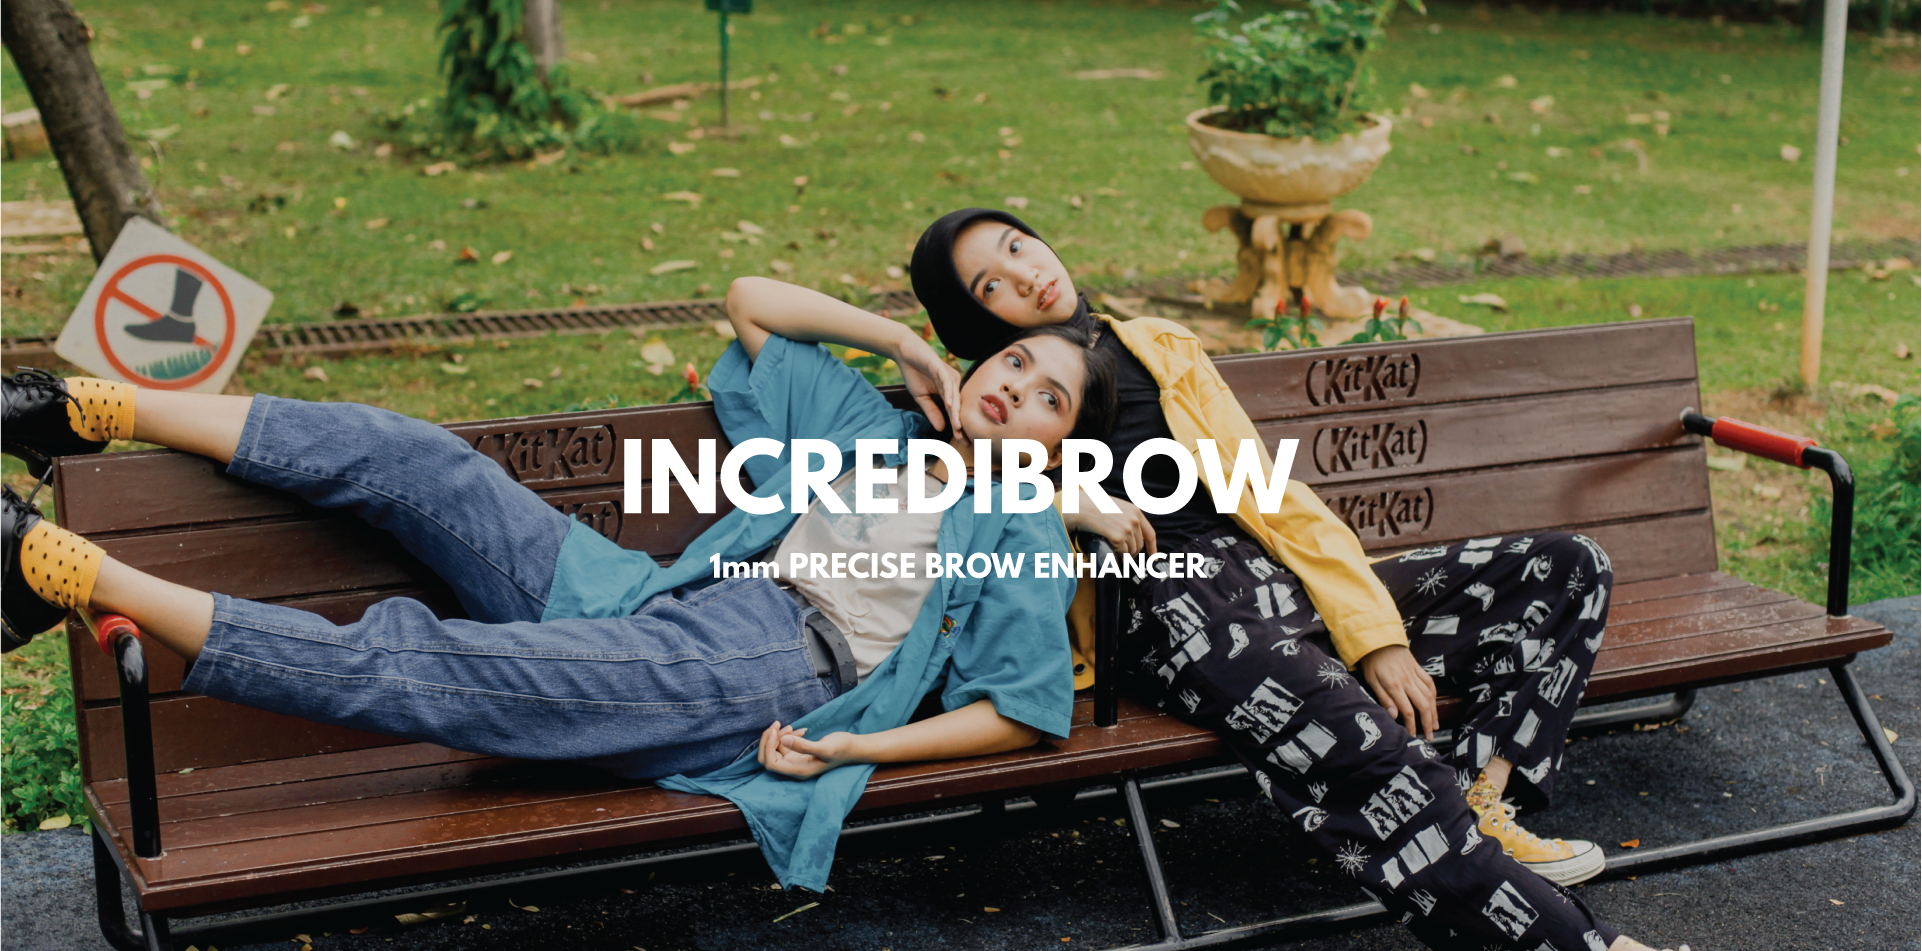 website-incredibrow-1.png